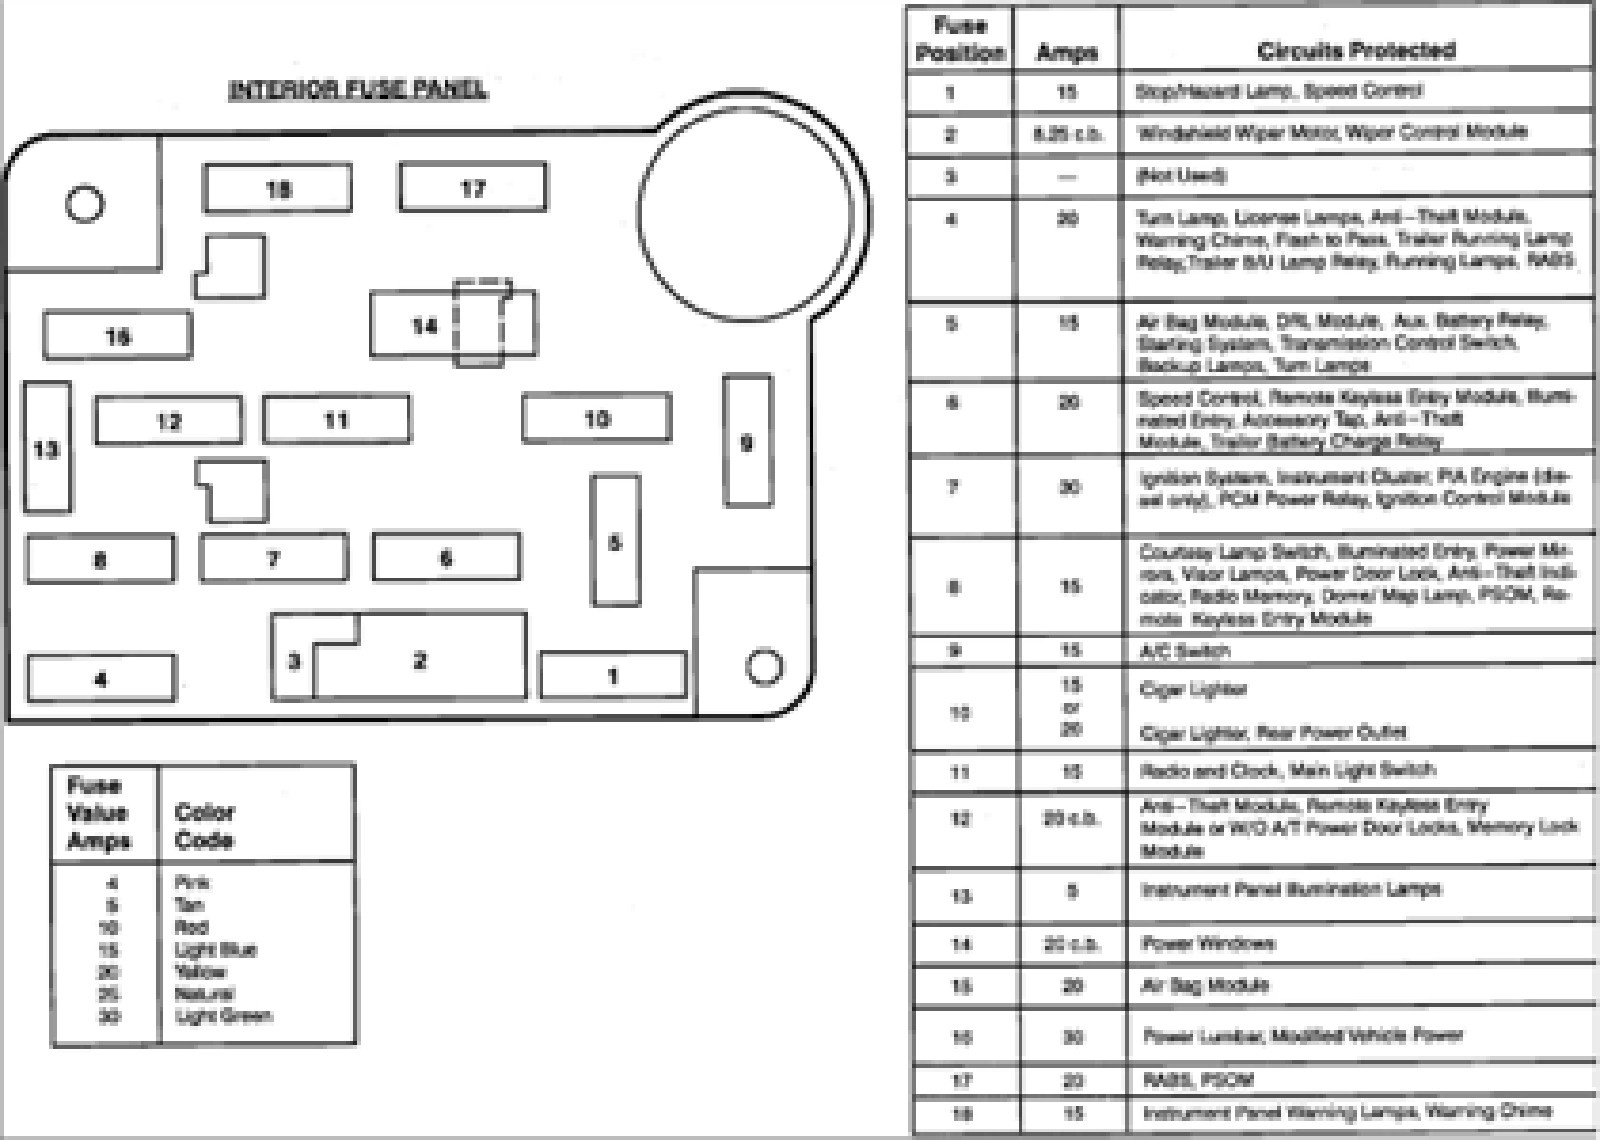 Motorcraft Fuse Panel Diagram Completed Wiring Diagrams 1997 Chevy Malibu Box Blog Diagram2014